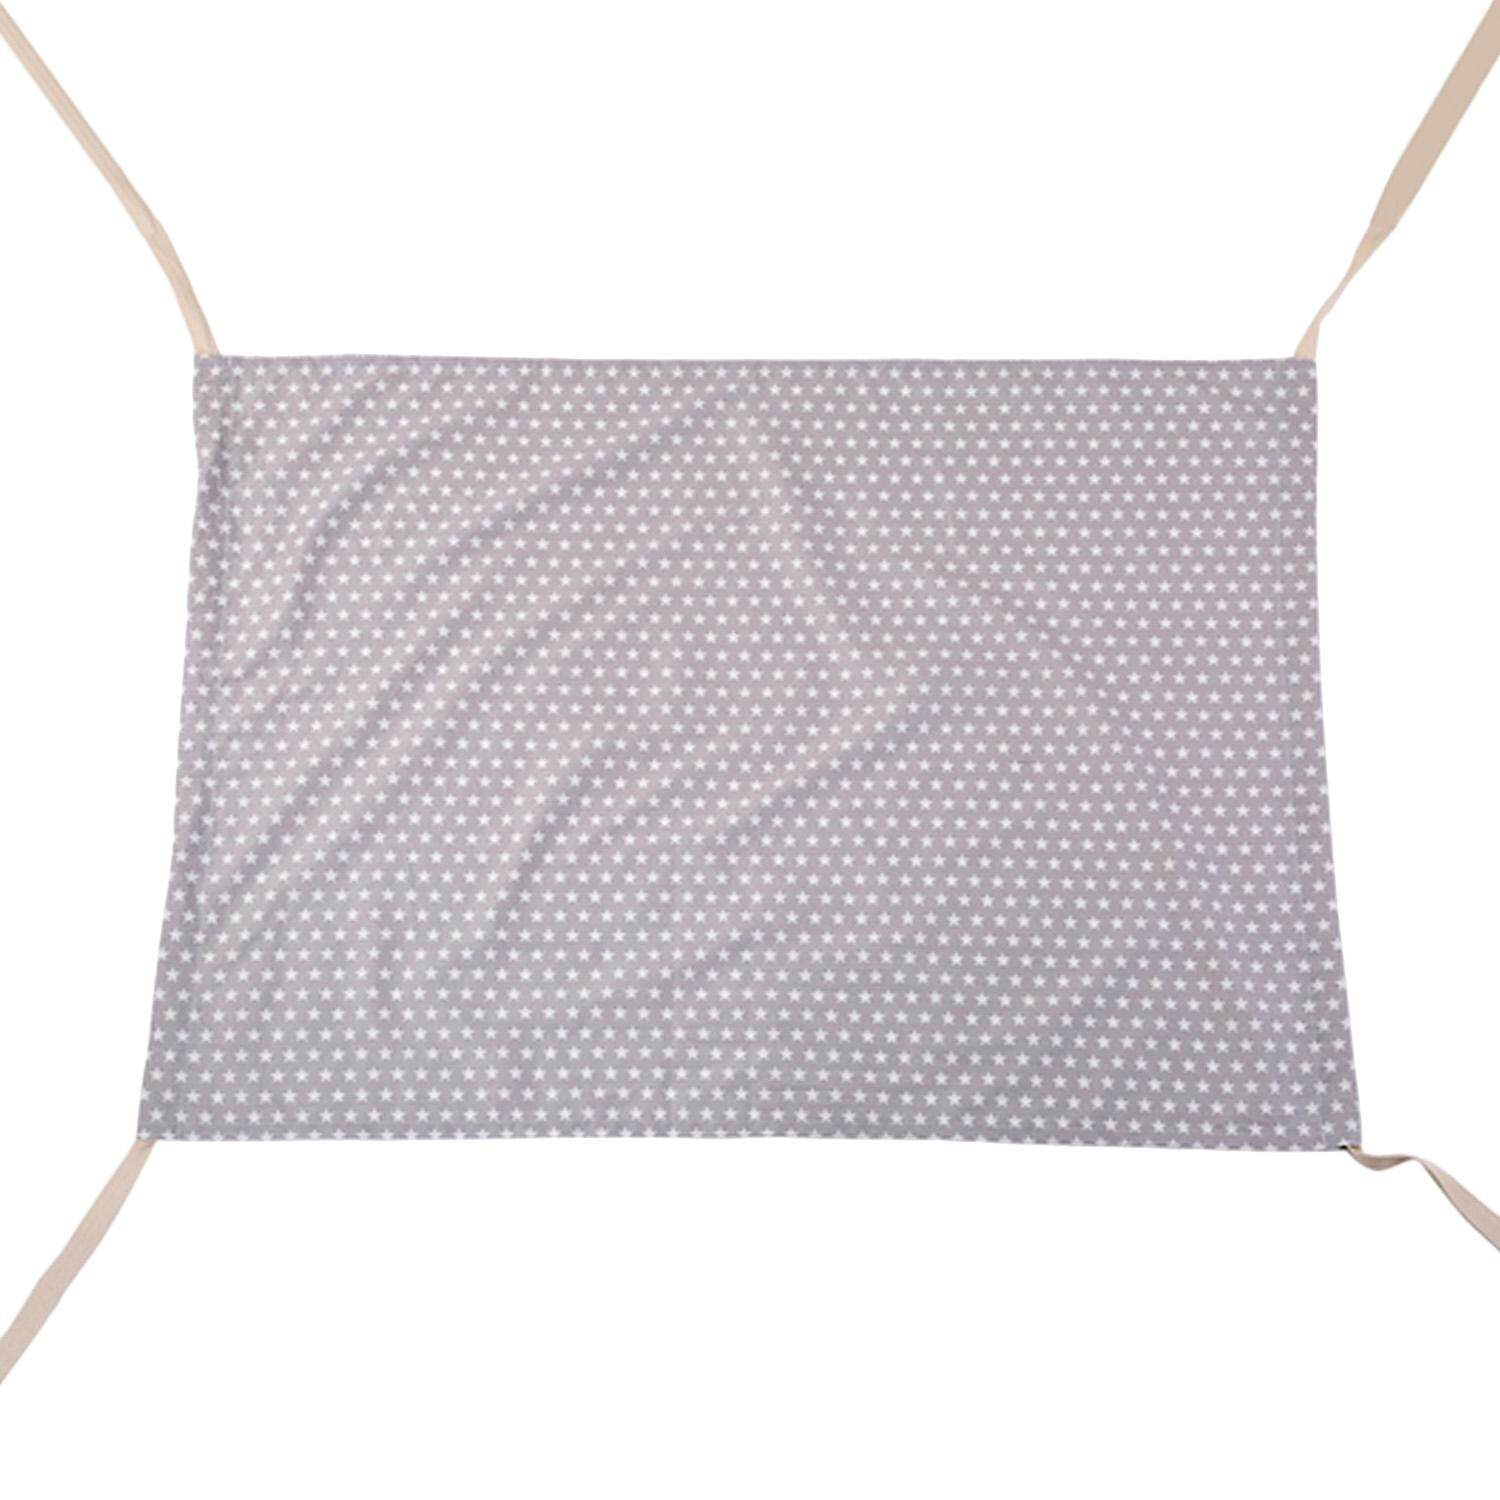 Portable Detachable Breathable Cotton Baby Hammock Cradle For Newborn Baby Crib Home Travel Outside - Intl By Jelly Store.